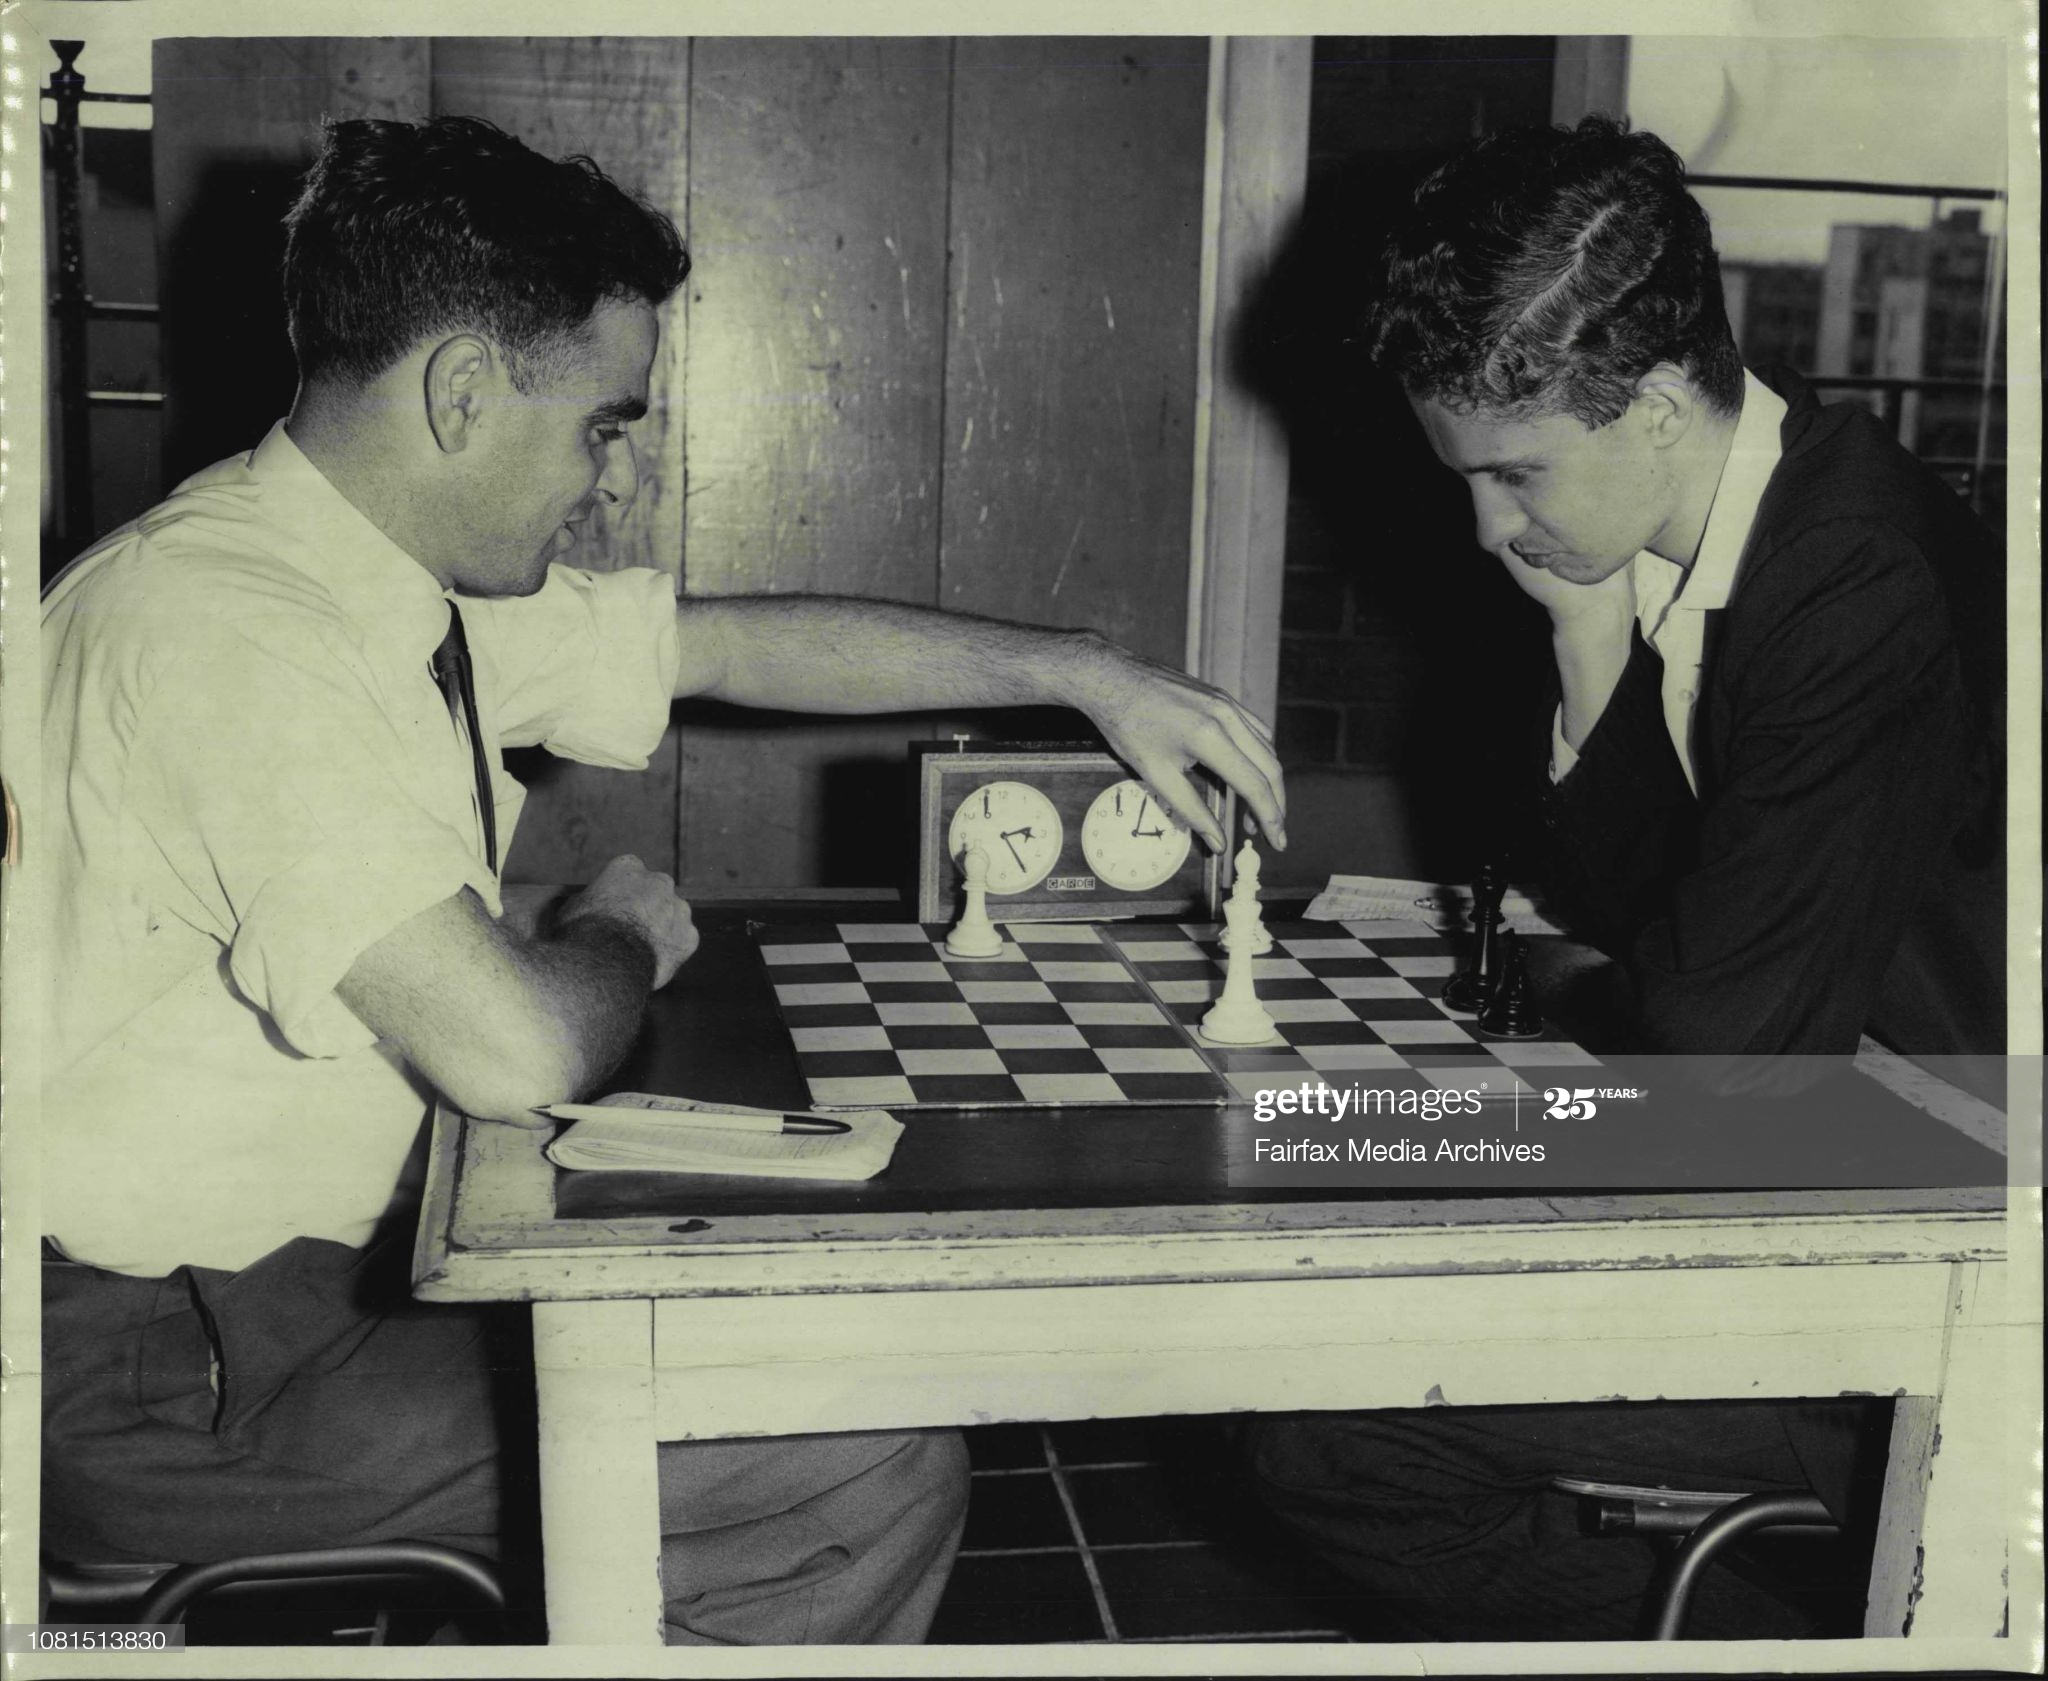 Tonight two Sydney ***** the N.S.W. Chess Championship at the Chess centre Liverpool St., City. They are Fred E Flatow, 28 of Belmore (left.) and Max Fuller, 21, of Kingsgrove (right). They have been playing for about 10 Hrs up till 6.15 p.m. and had move 121. The match will go on till move 144 at which stage a draw will be declared or until either man wins before then. February 23, 1966. (Photo by Richard John Pinfold/Fairfax Media via Getty Images).